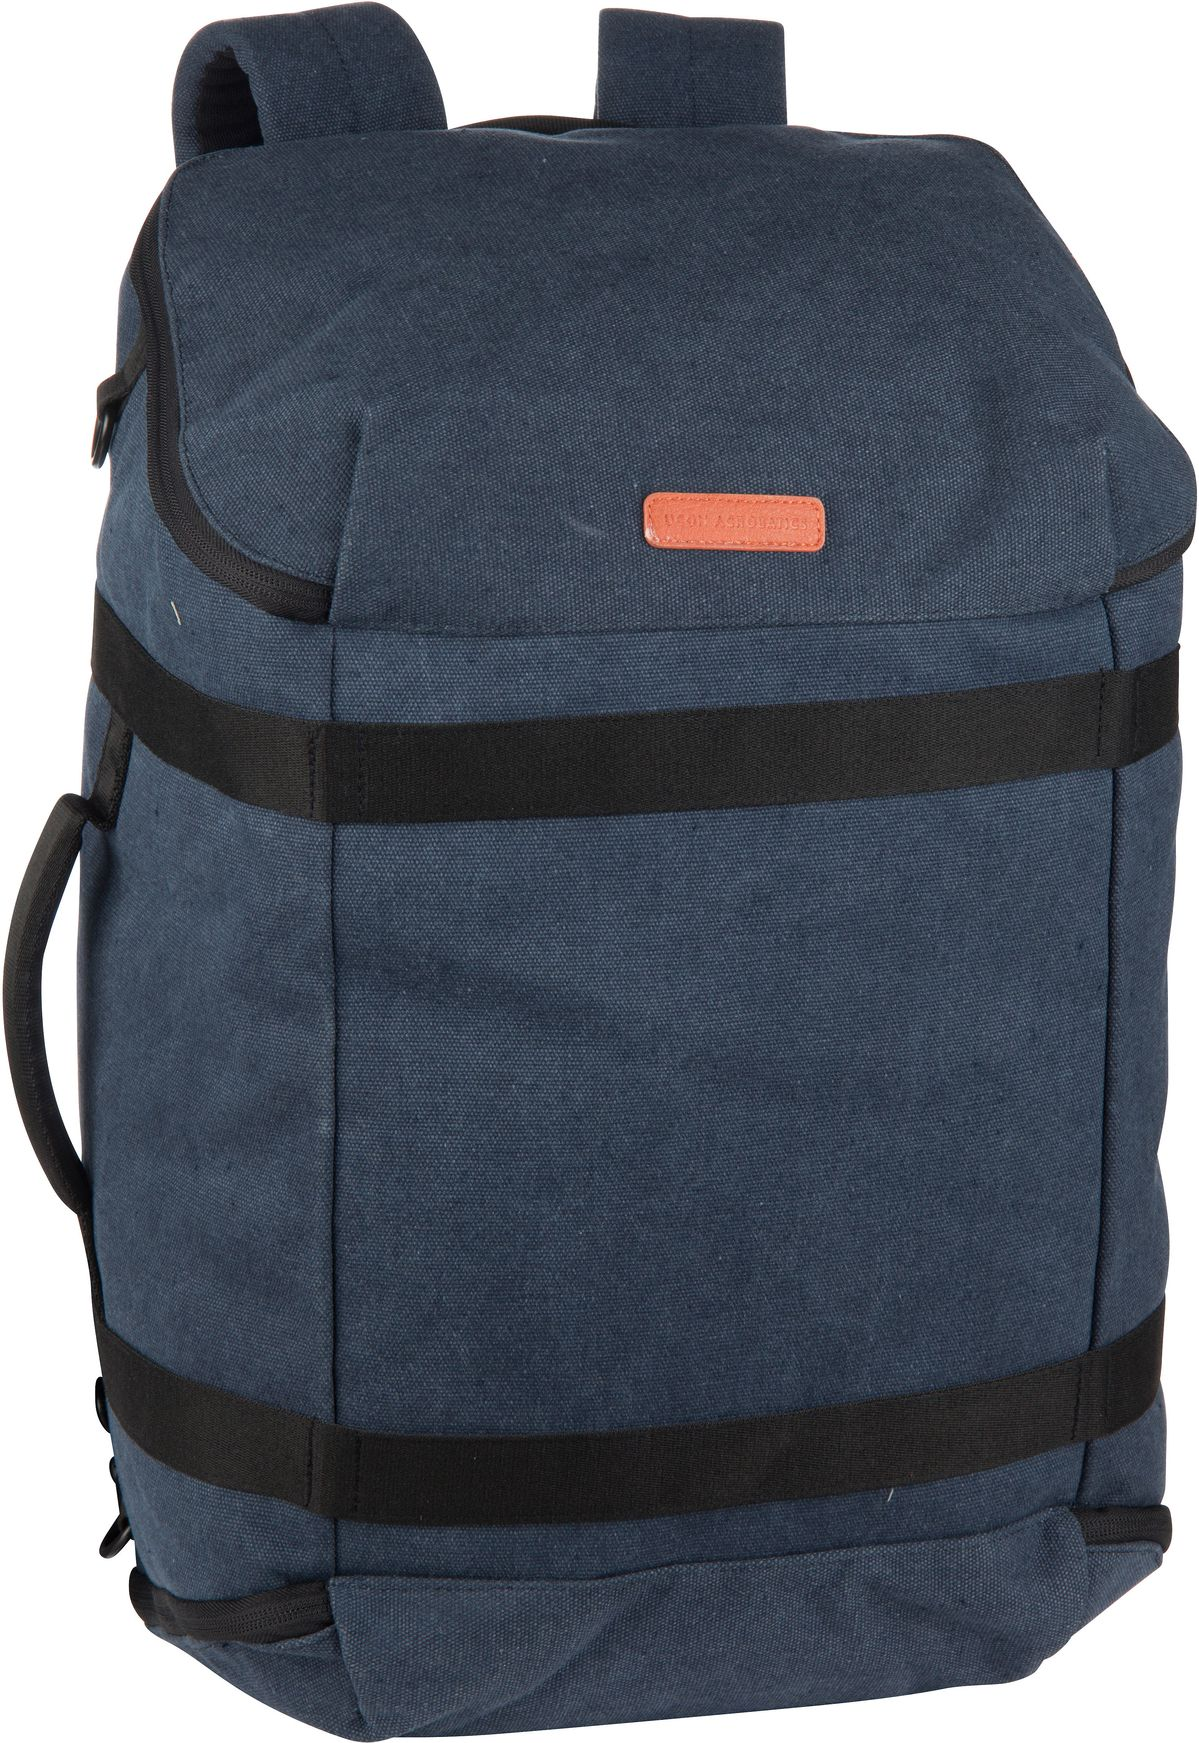 Rucksack / Daypack Original Arvid Backpack Dark Navy (33 Liter)